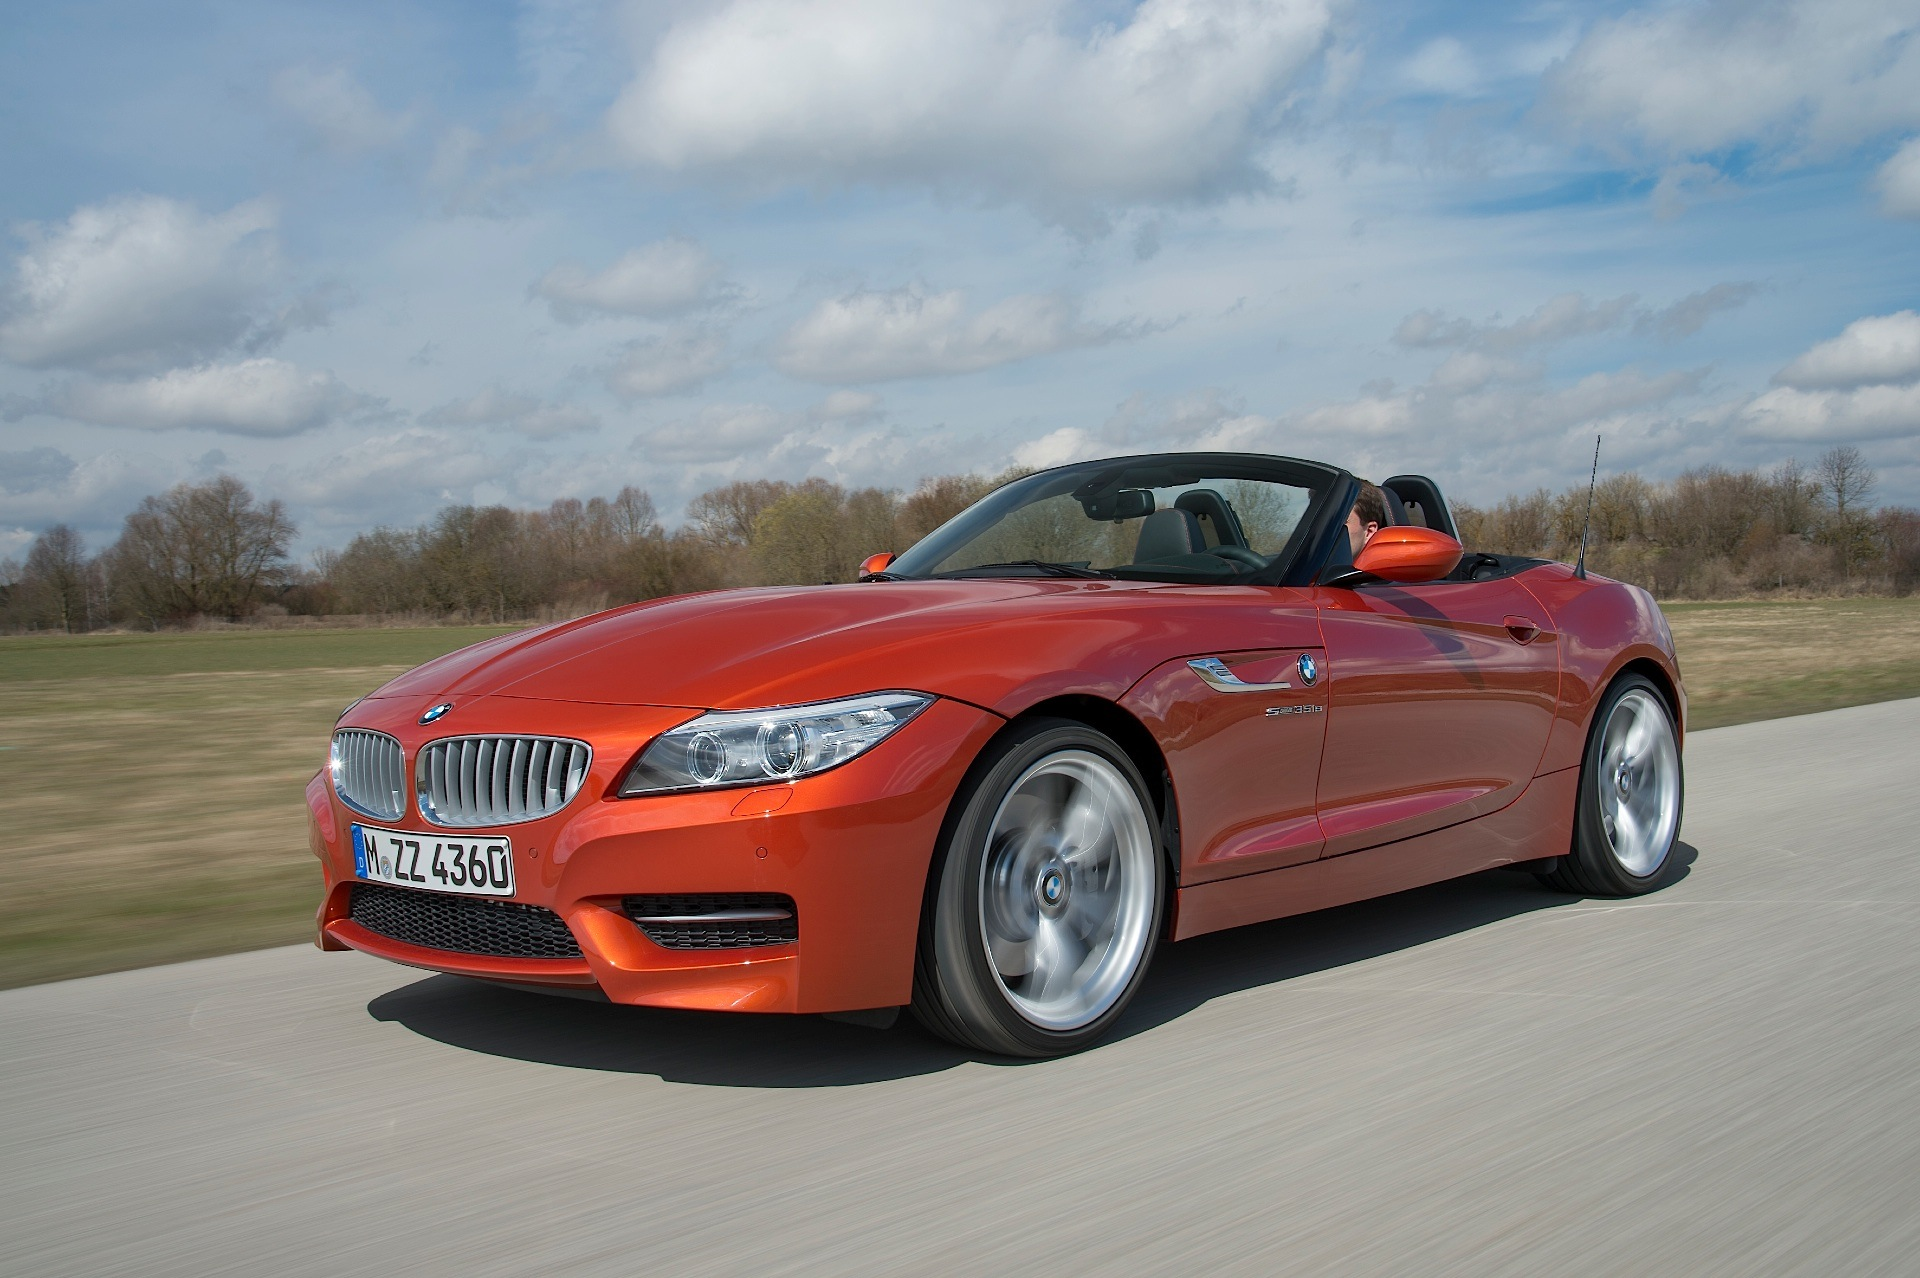 prices for 2016 bmw z4 roadster remain unchanged. Black Bedroom Furniture Sets. Home Design Ideas